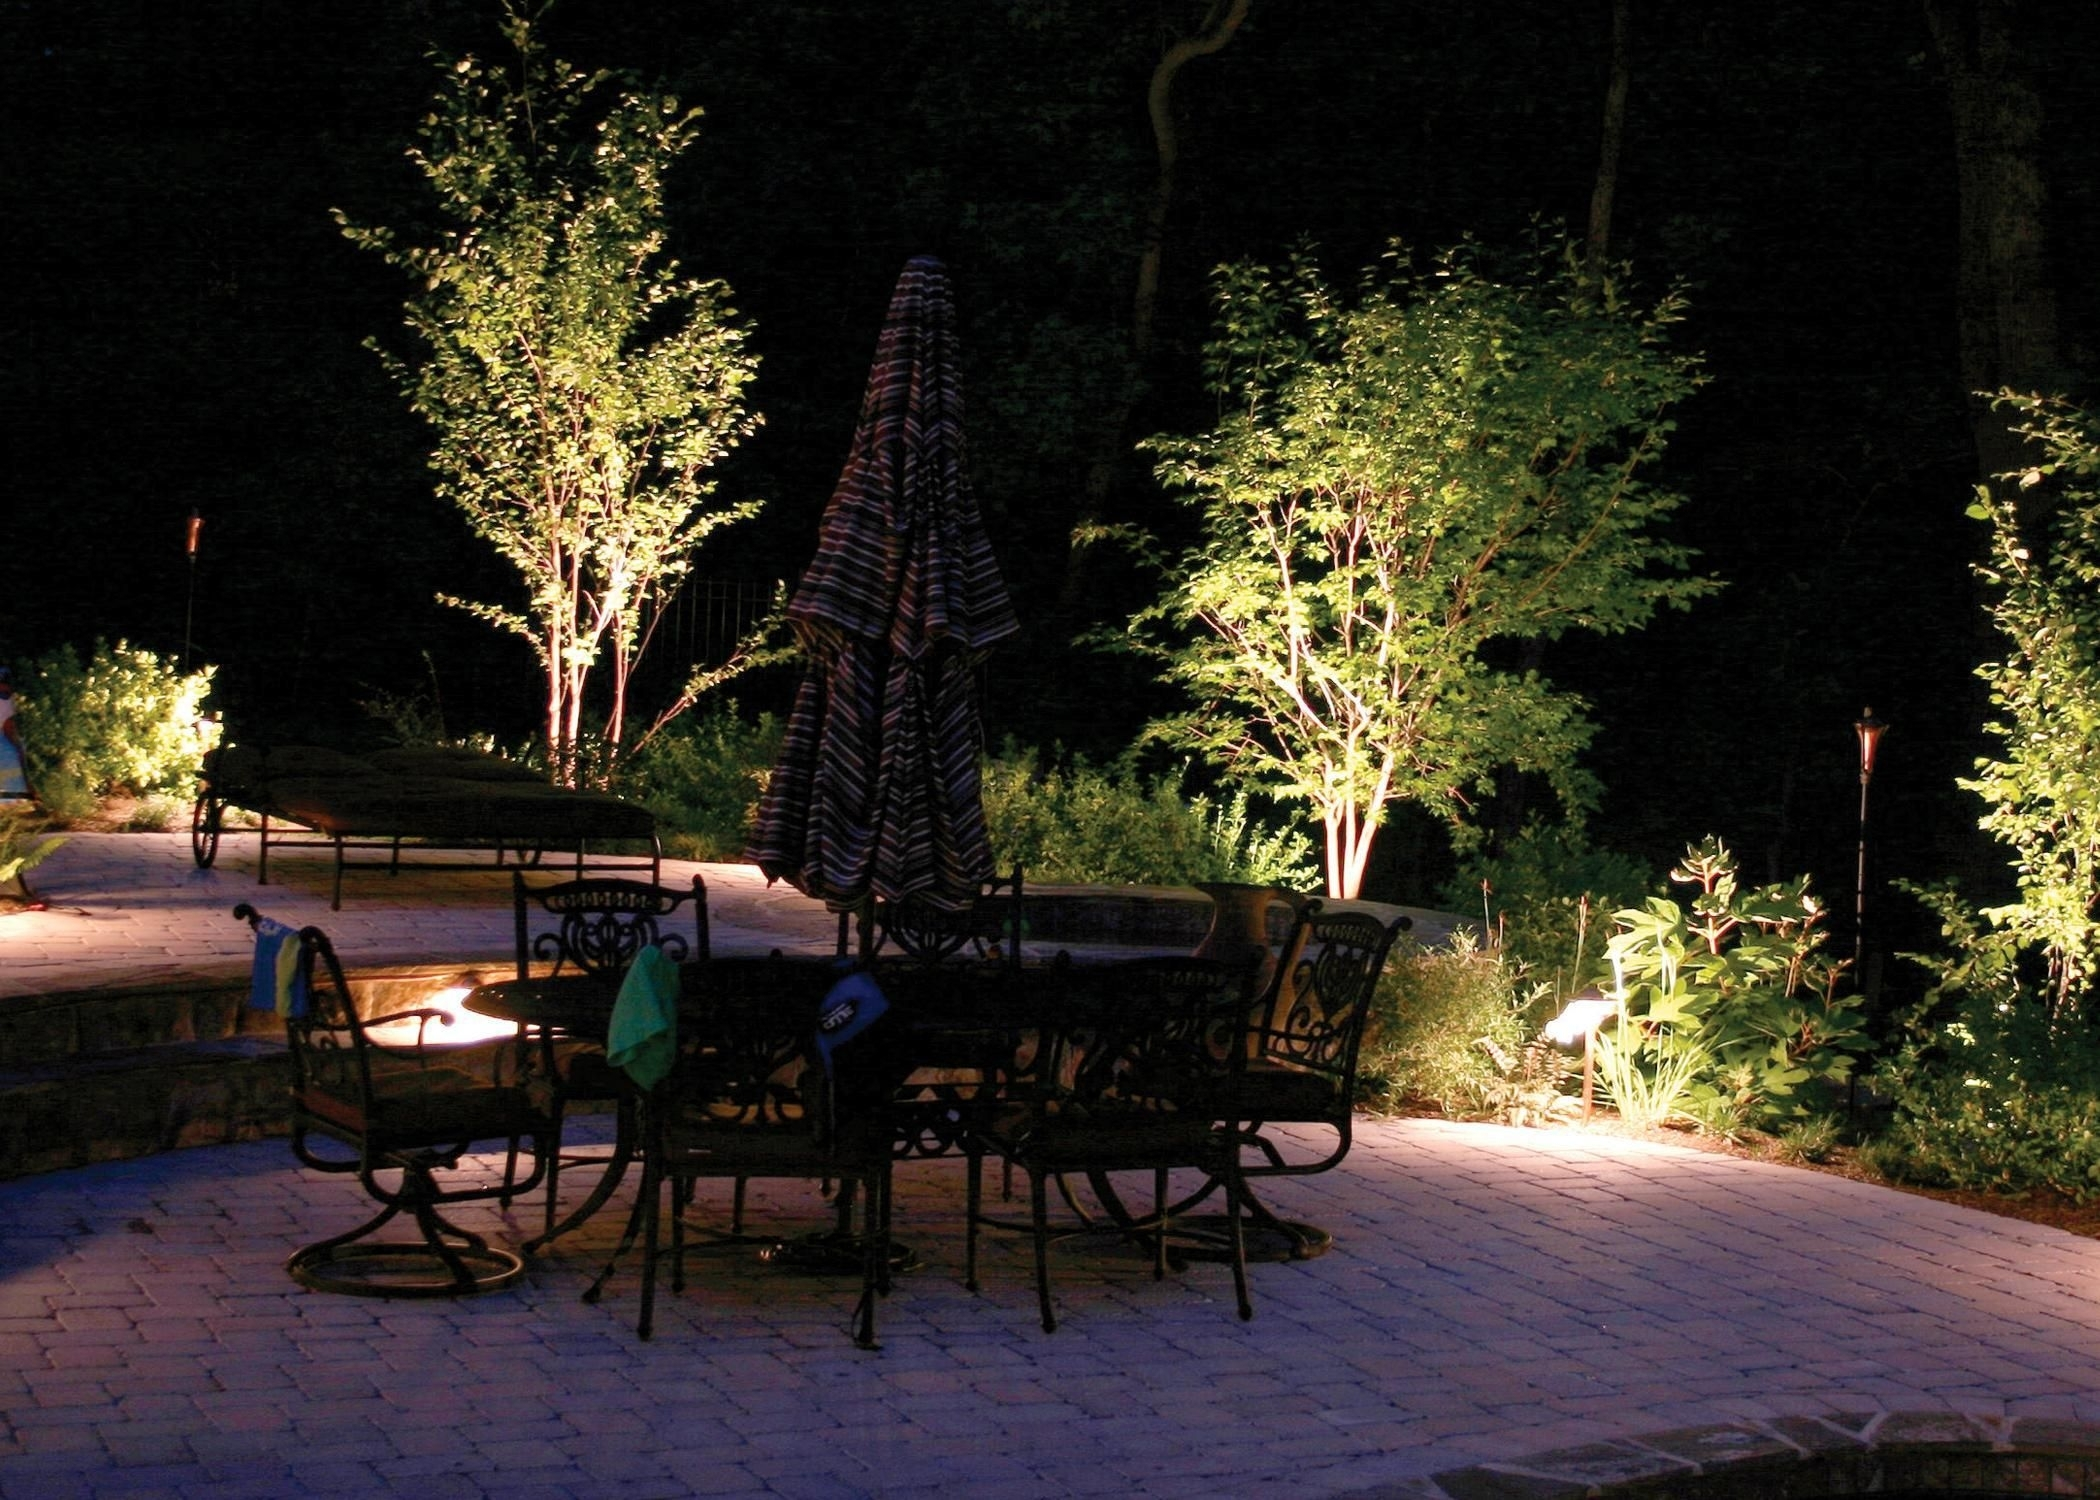 Diy Outdoor Lanterns Lighting For Ranch Style House Landscape Ideas Within Diy Outdoor Lanterns (View 12 of 20)